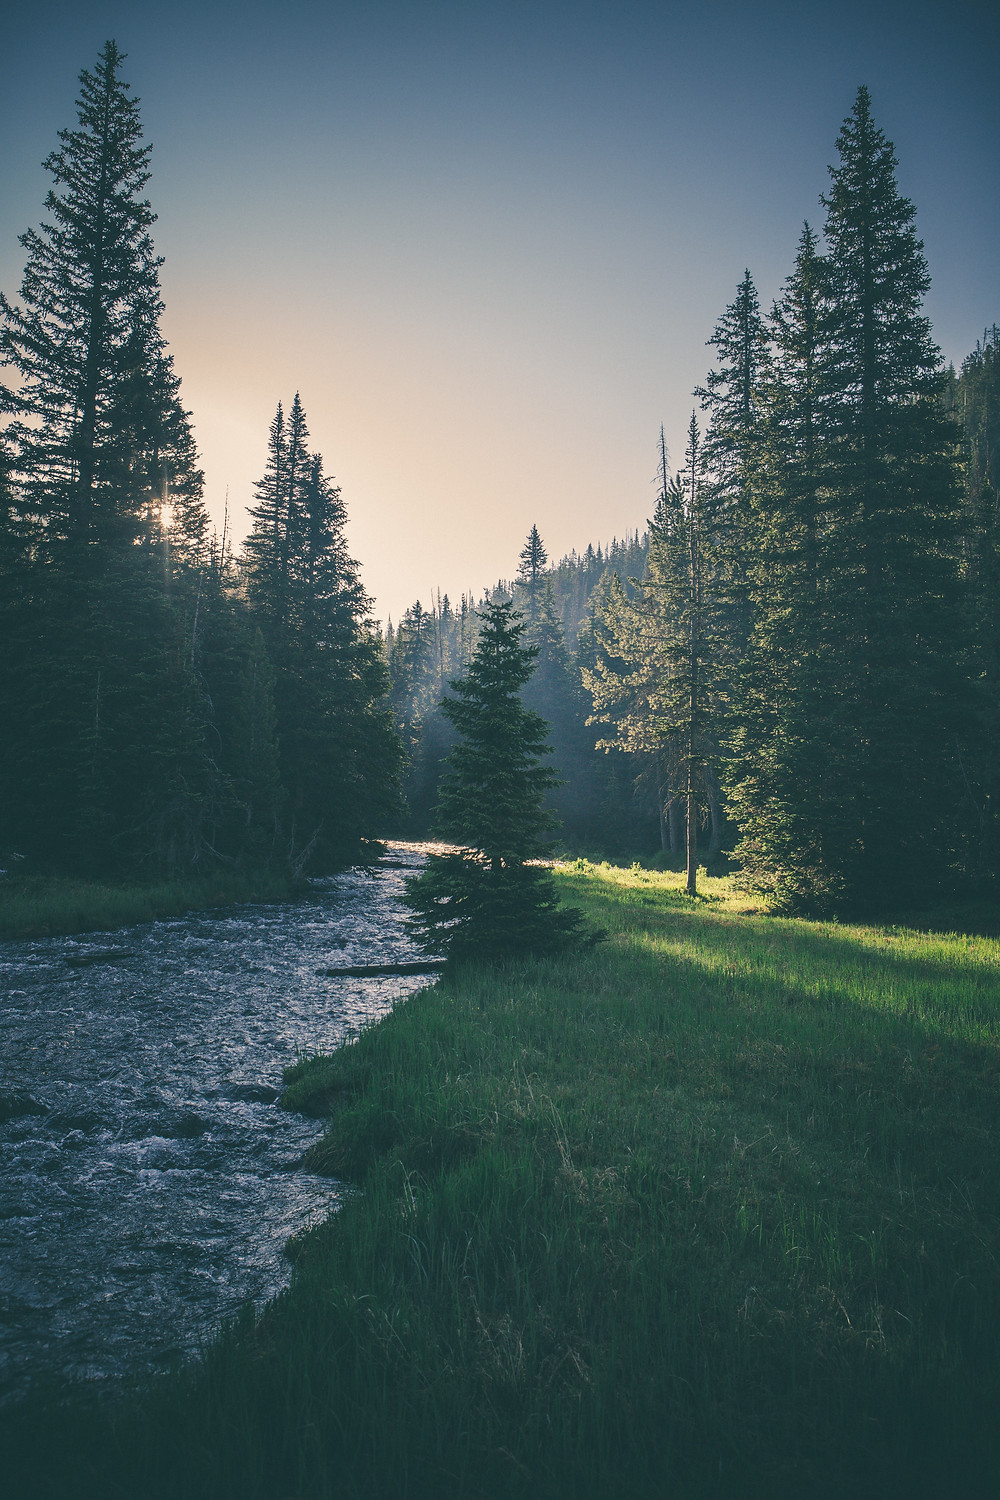 Carbon Down invests in forest conservation to offset user emissions